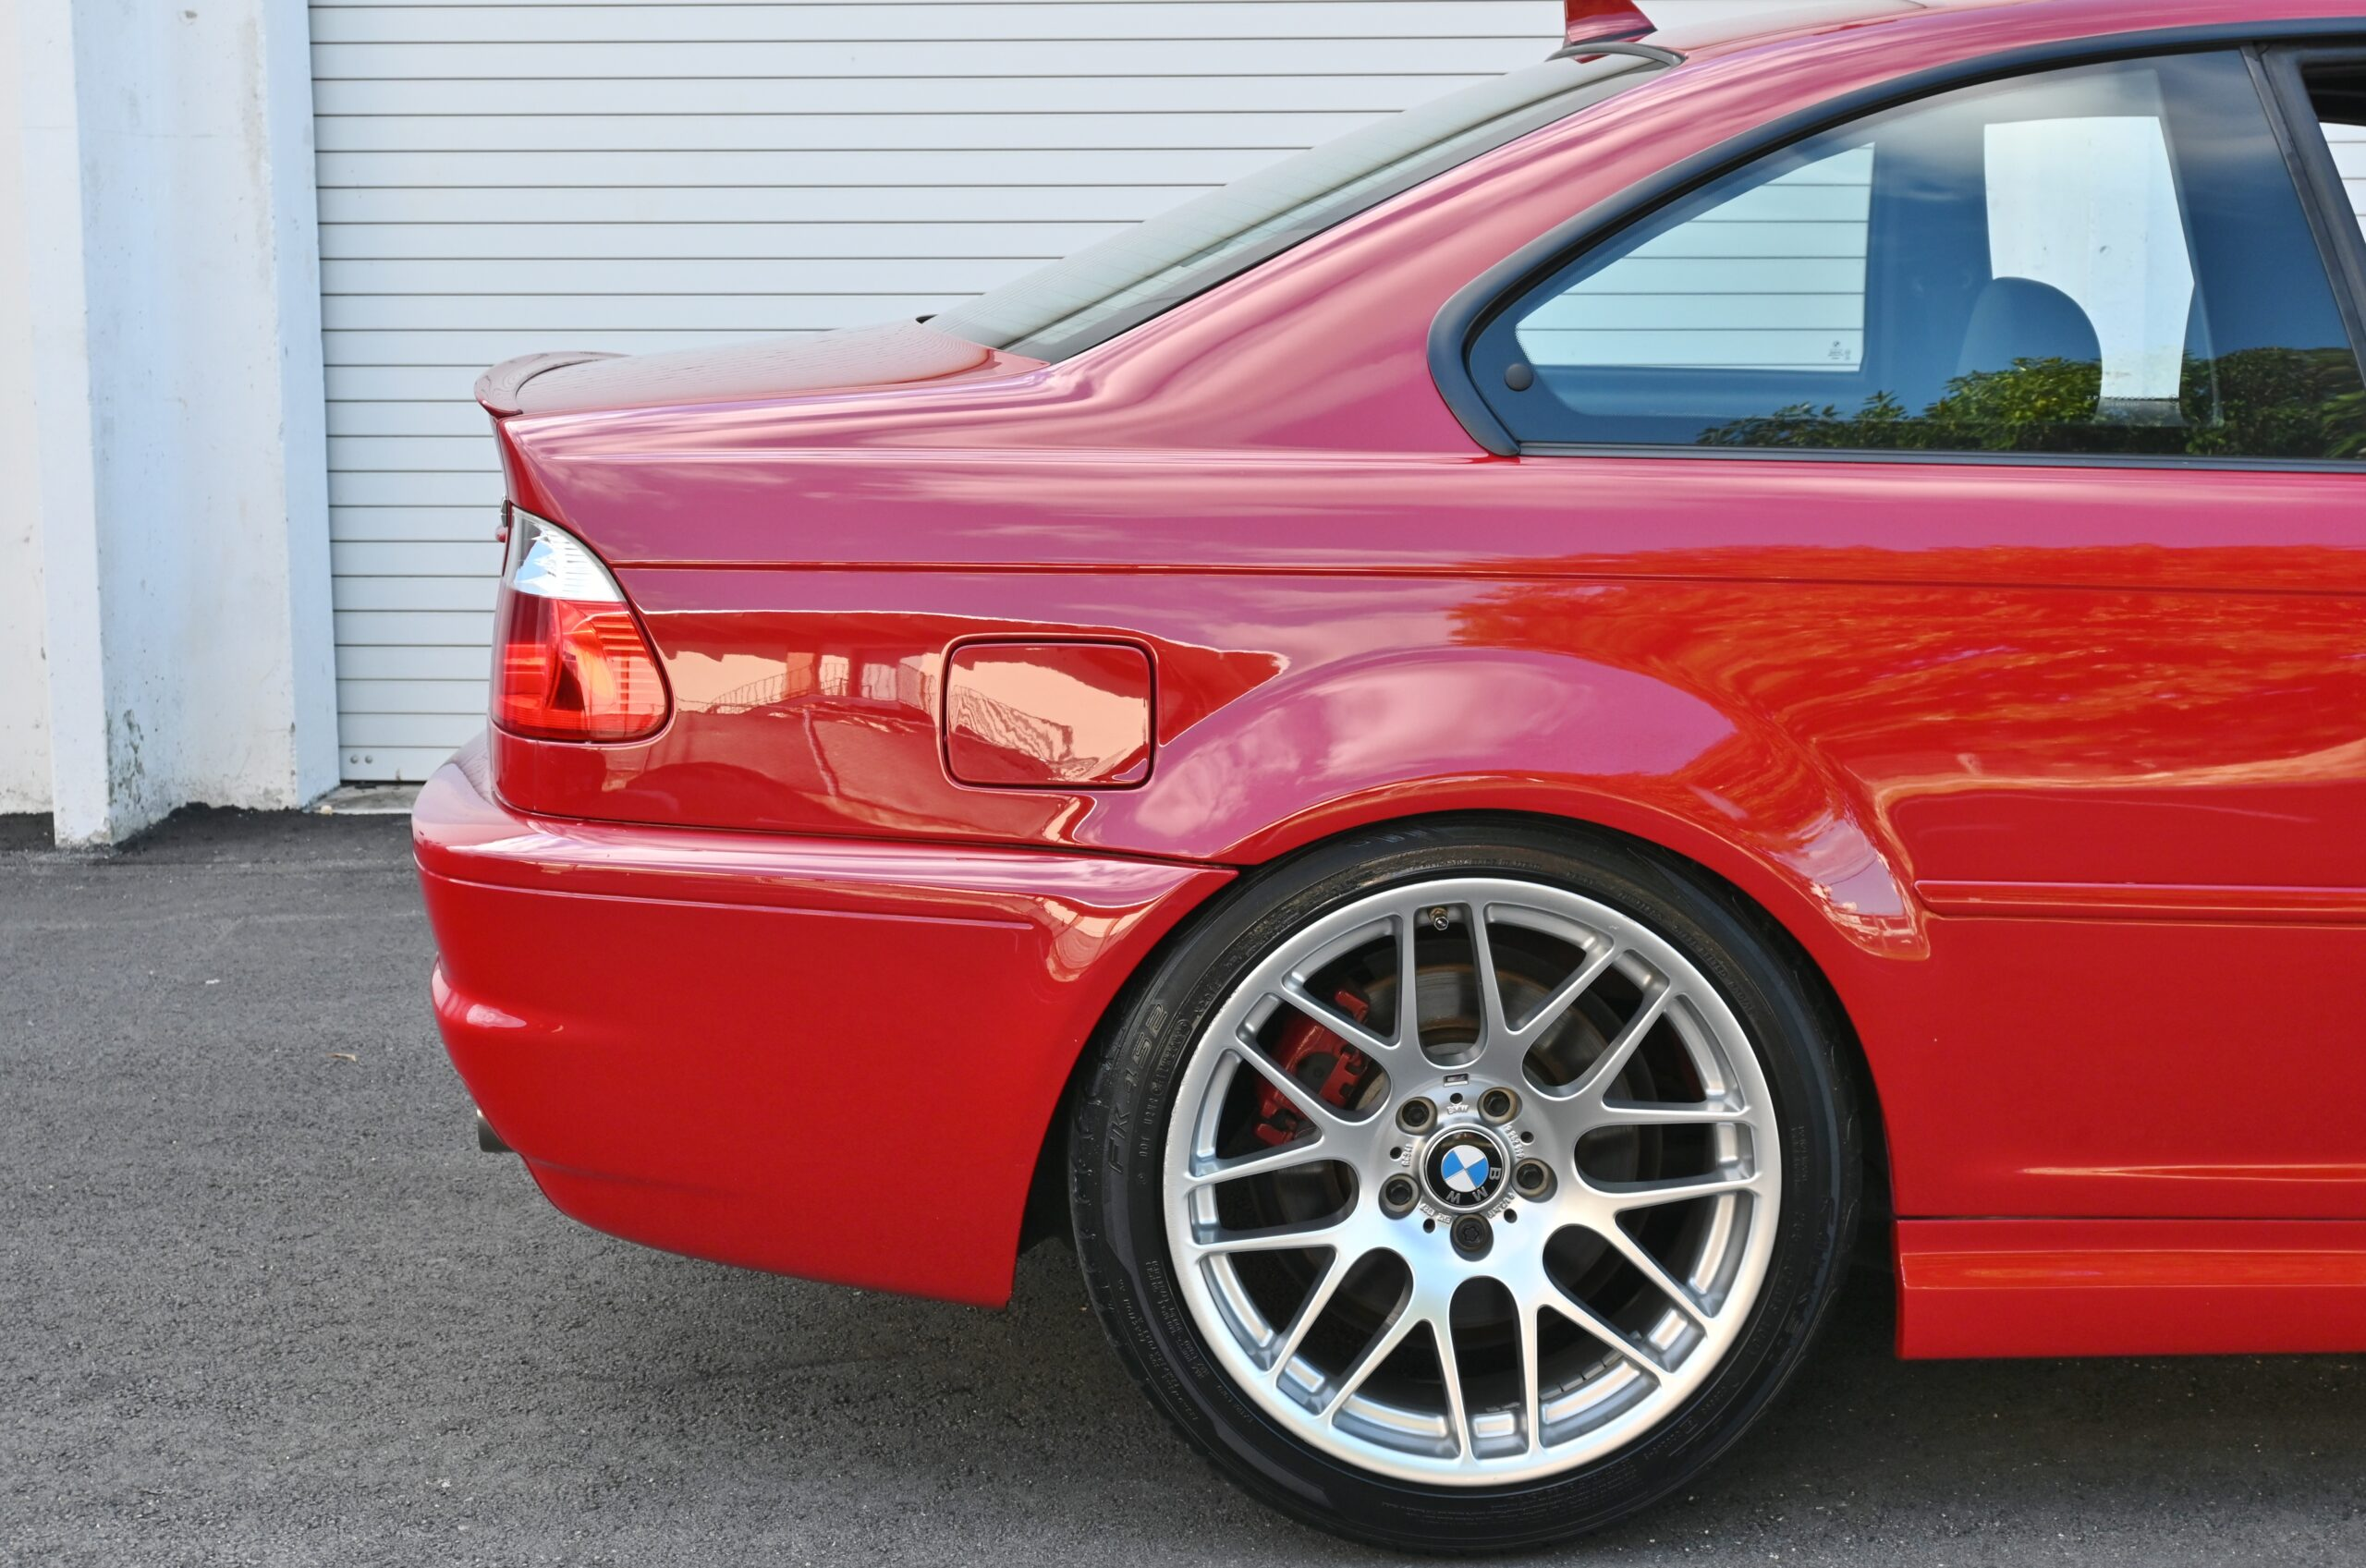 2005 BMW M3 E46 6 Speed Manual Imola Red/ OEM ZCP Wheels / 88K Miles / Enthusiast Owned -Meticulously Maintained